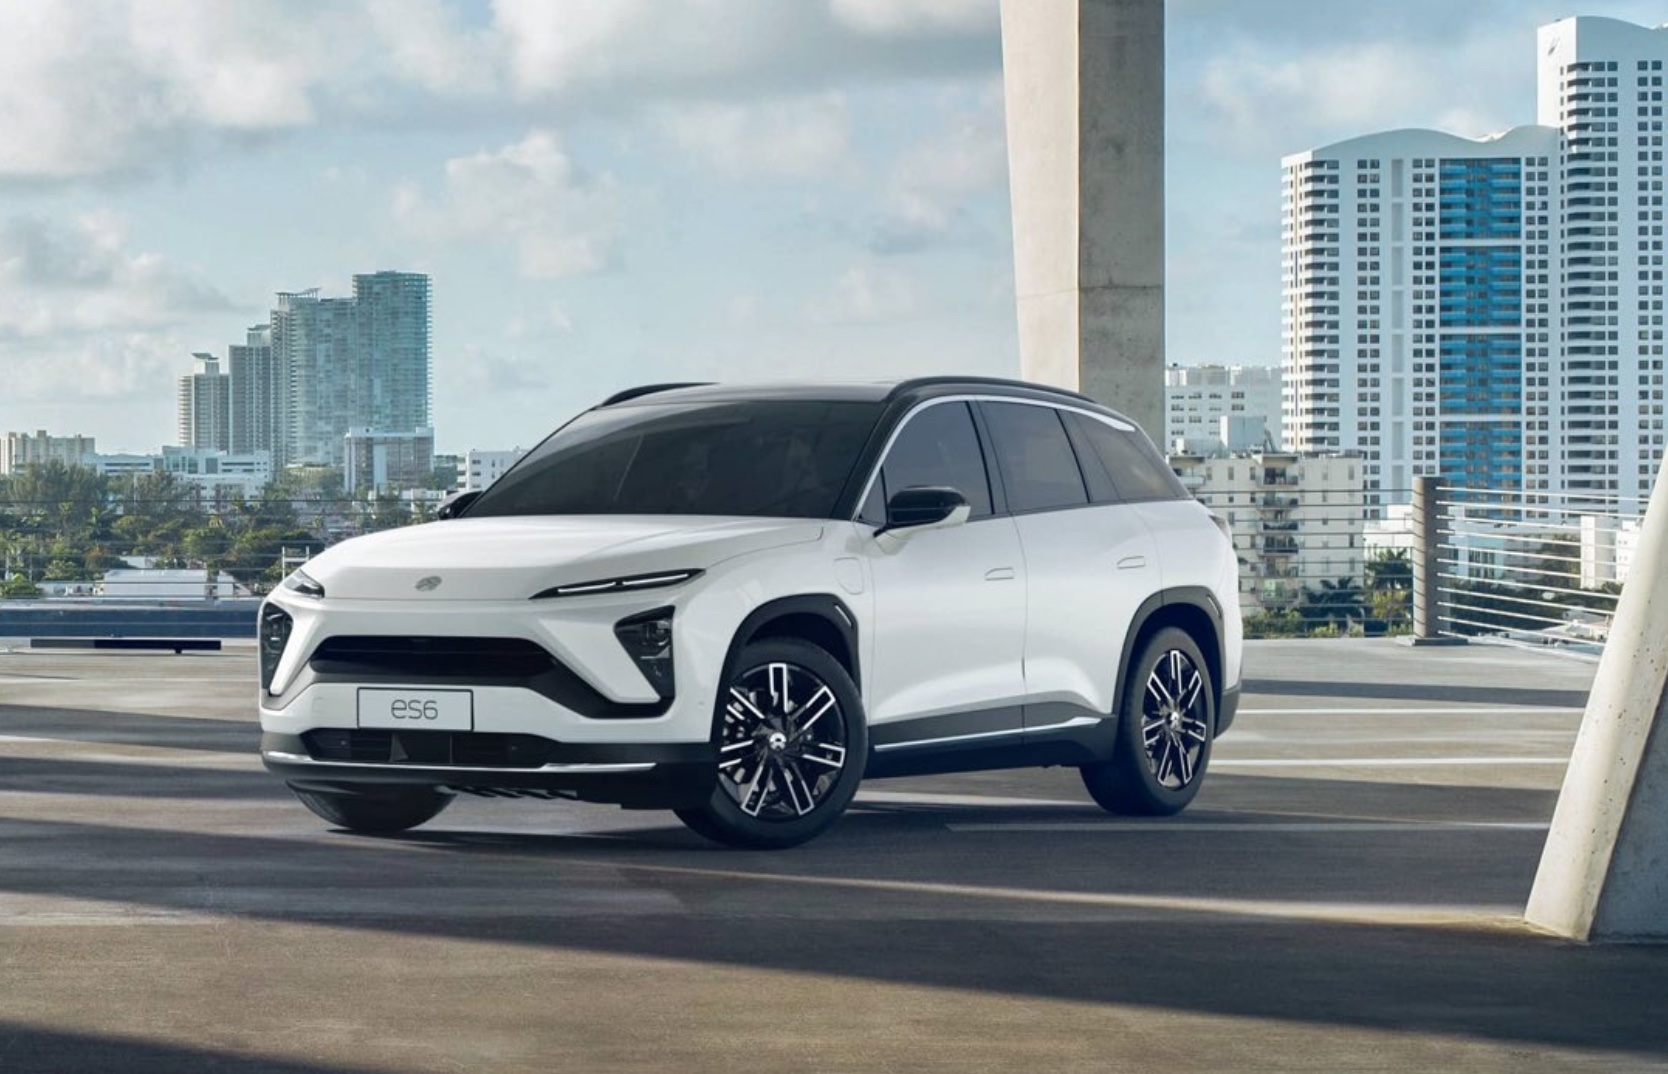 NIO delivers 12,206 vehicles in Q3, up 154% year-on-year-cnTechPost